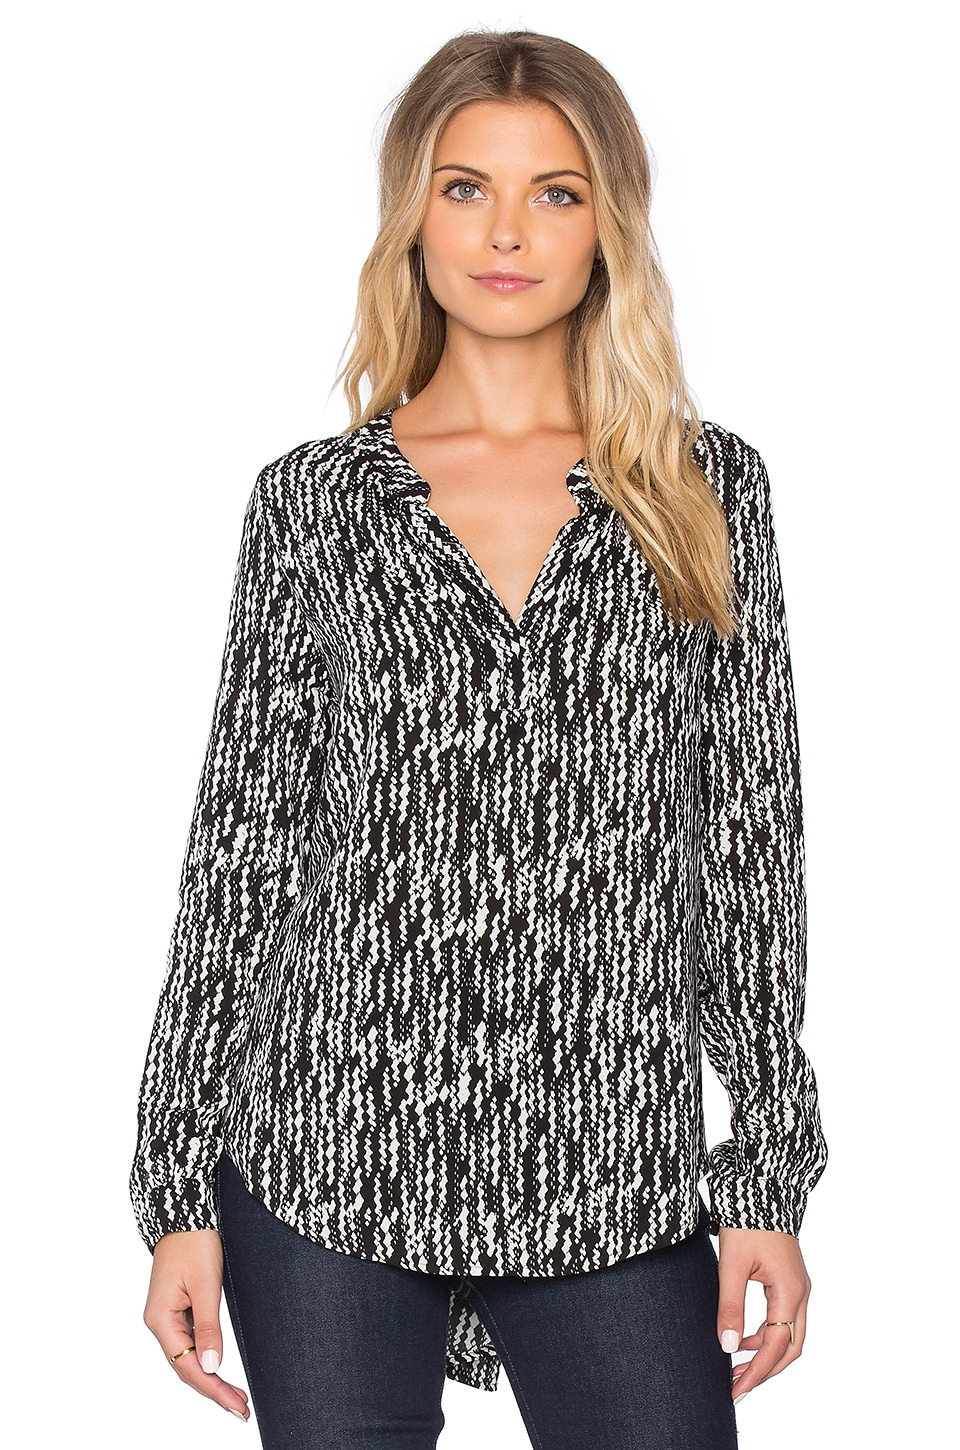 Velvet by Graham & Spencer Arista Printed Challis Long Sleeve Blouse in Black & Cream